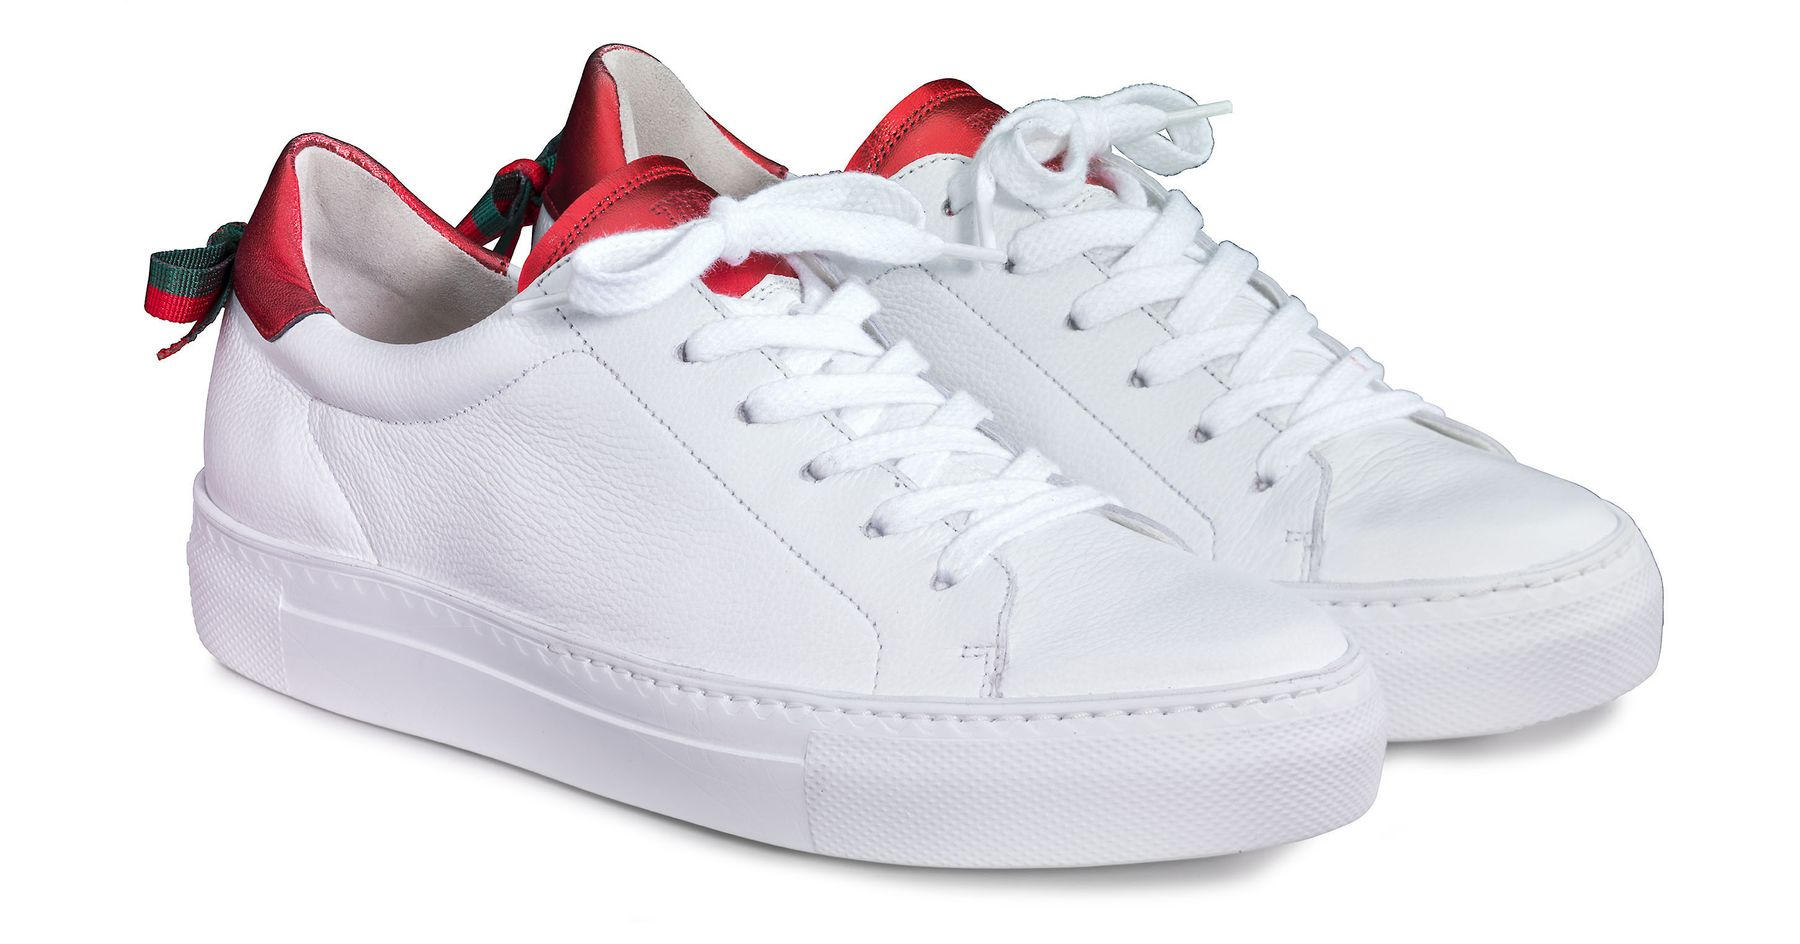 sold worldwide official supplier classic styles Pauls, white with metallic details - Paul Green